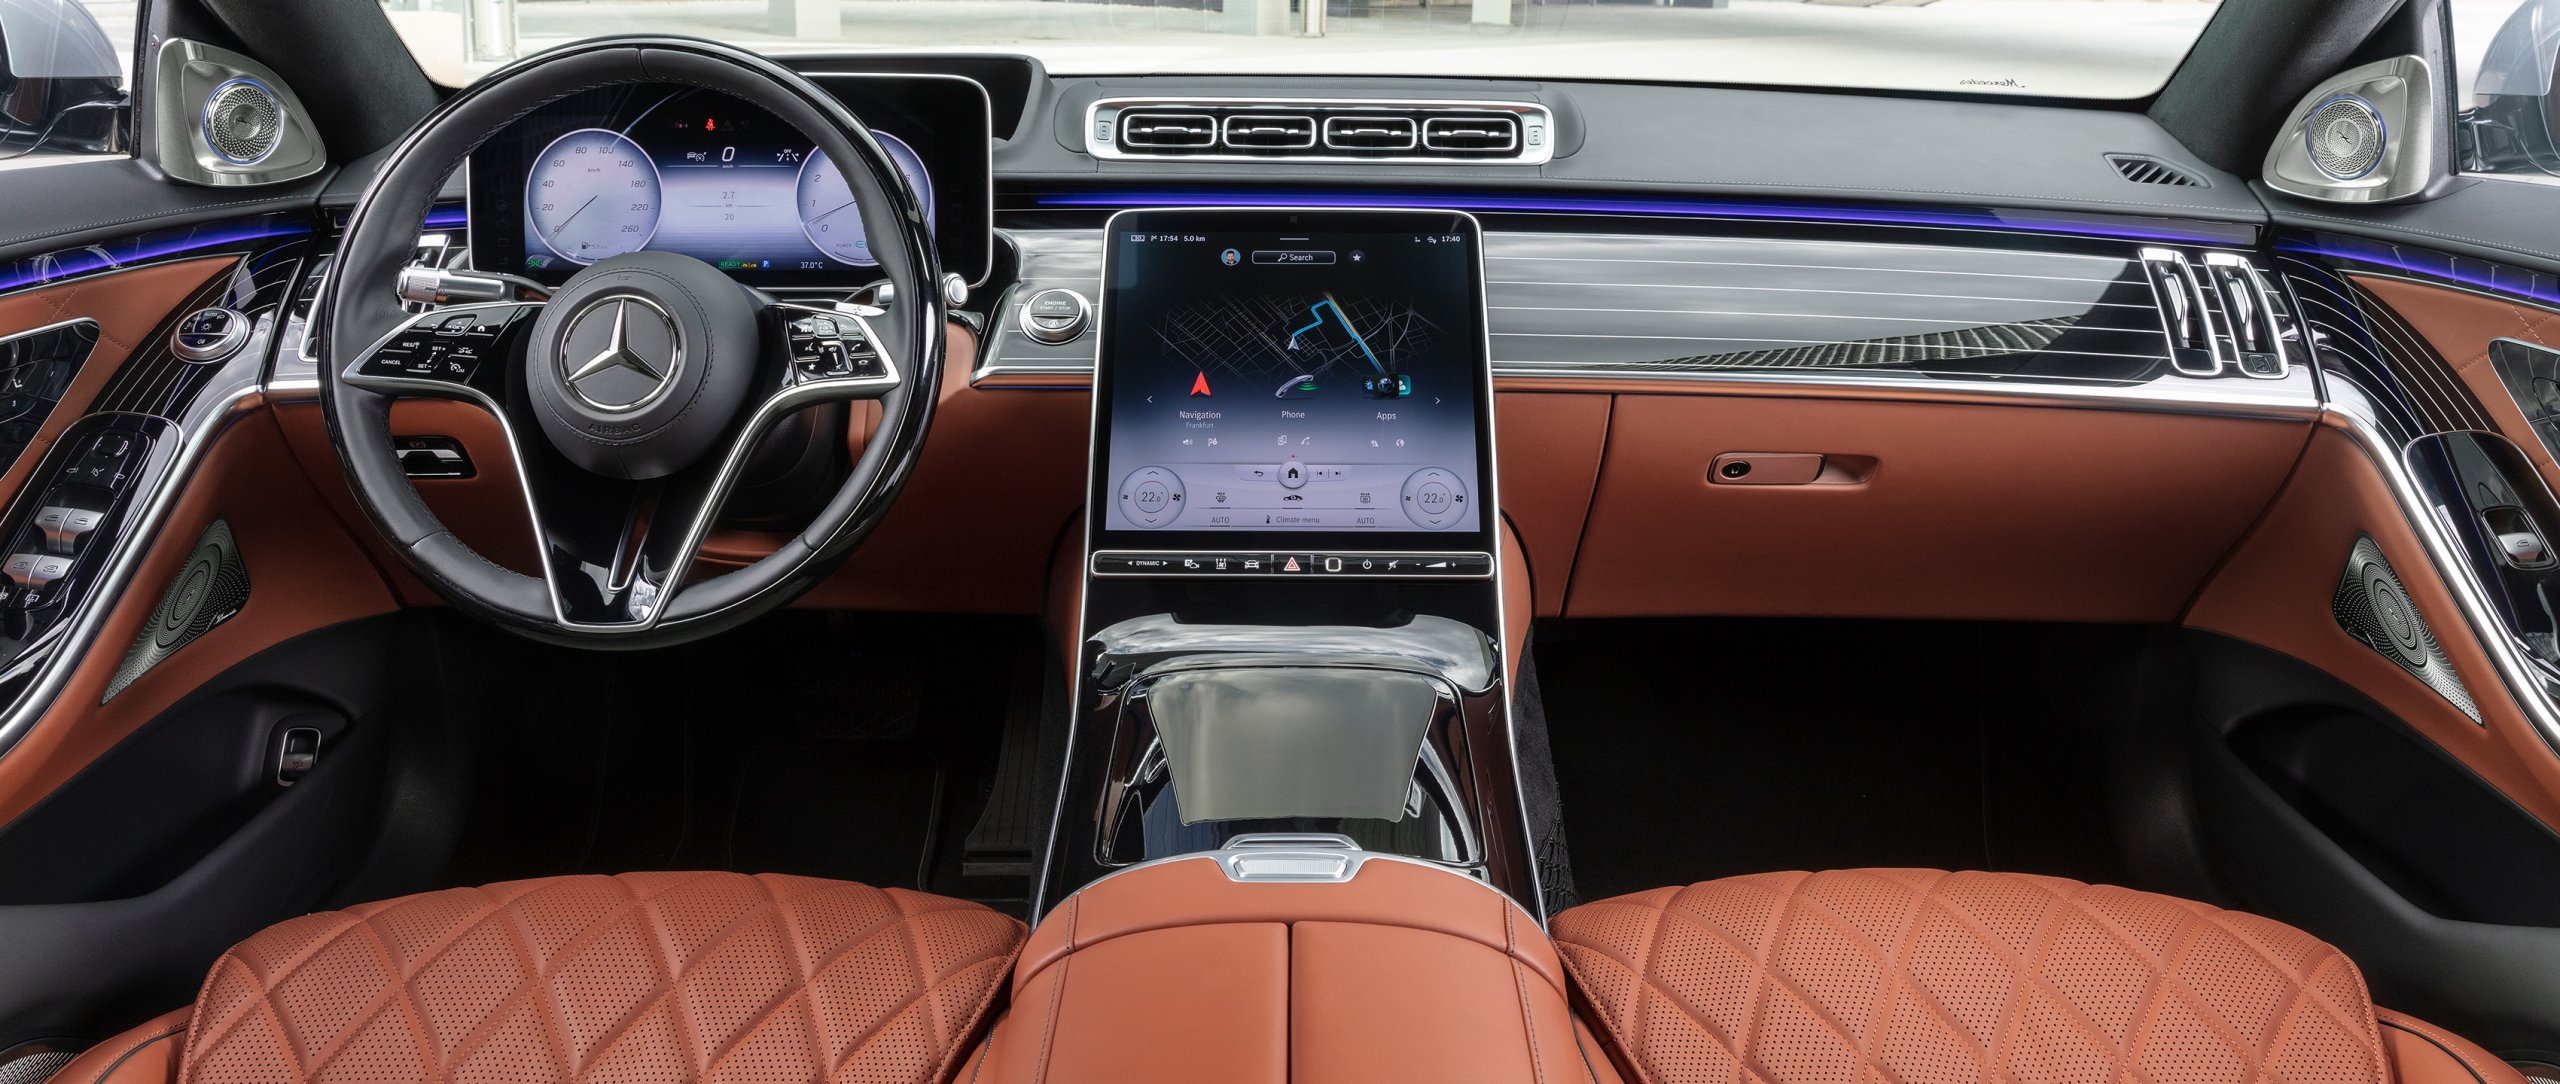 Cockpit of the 2020 Mercedes-Benz S-Class (BR 223)